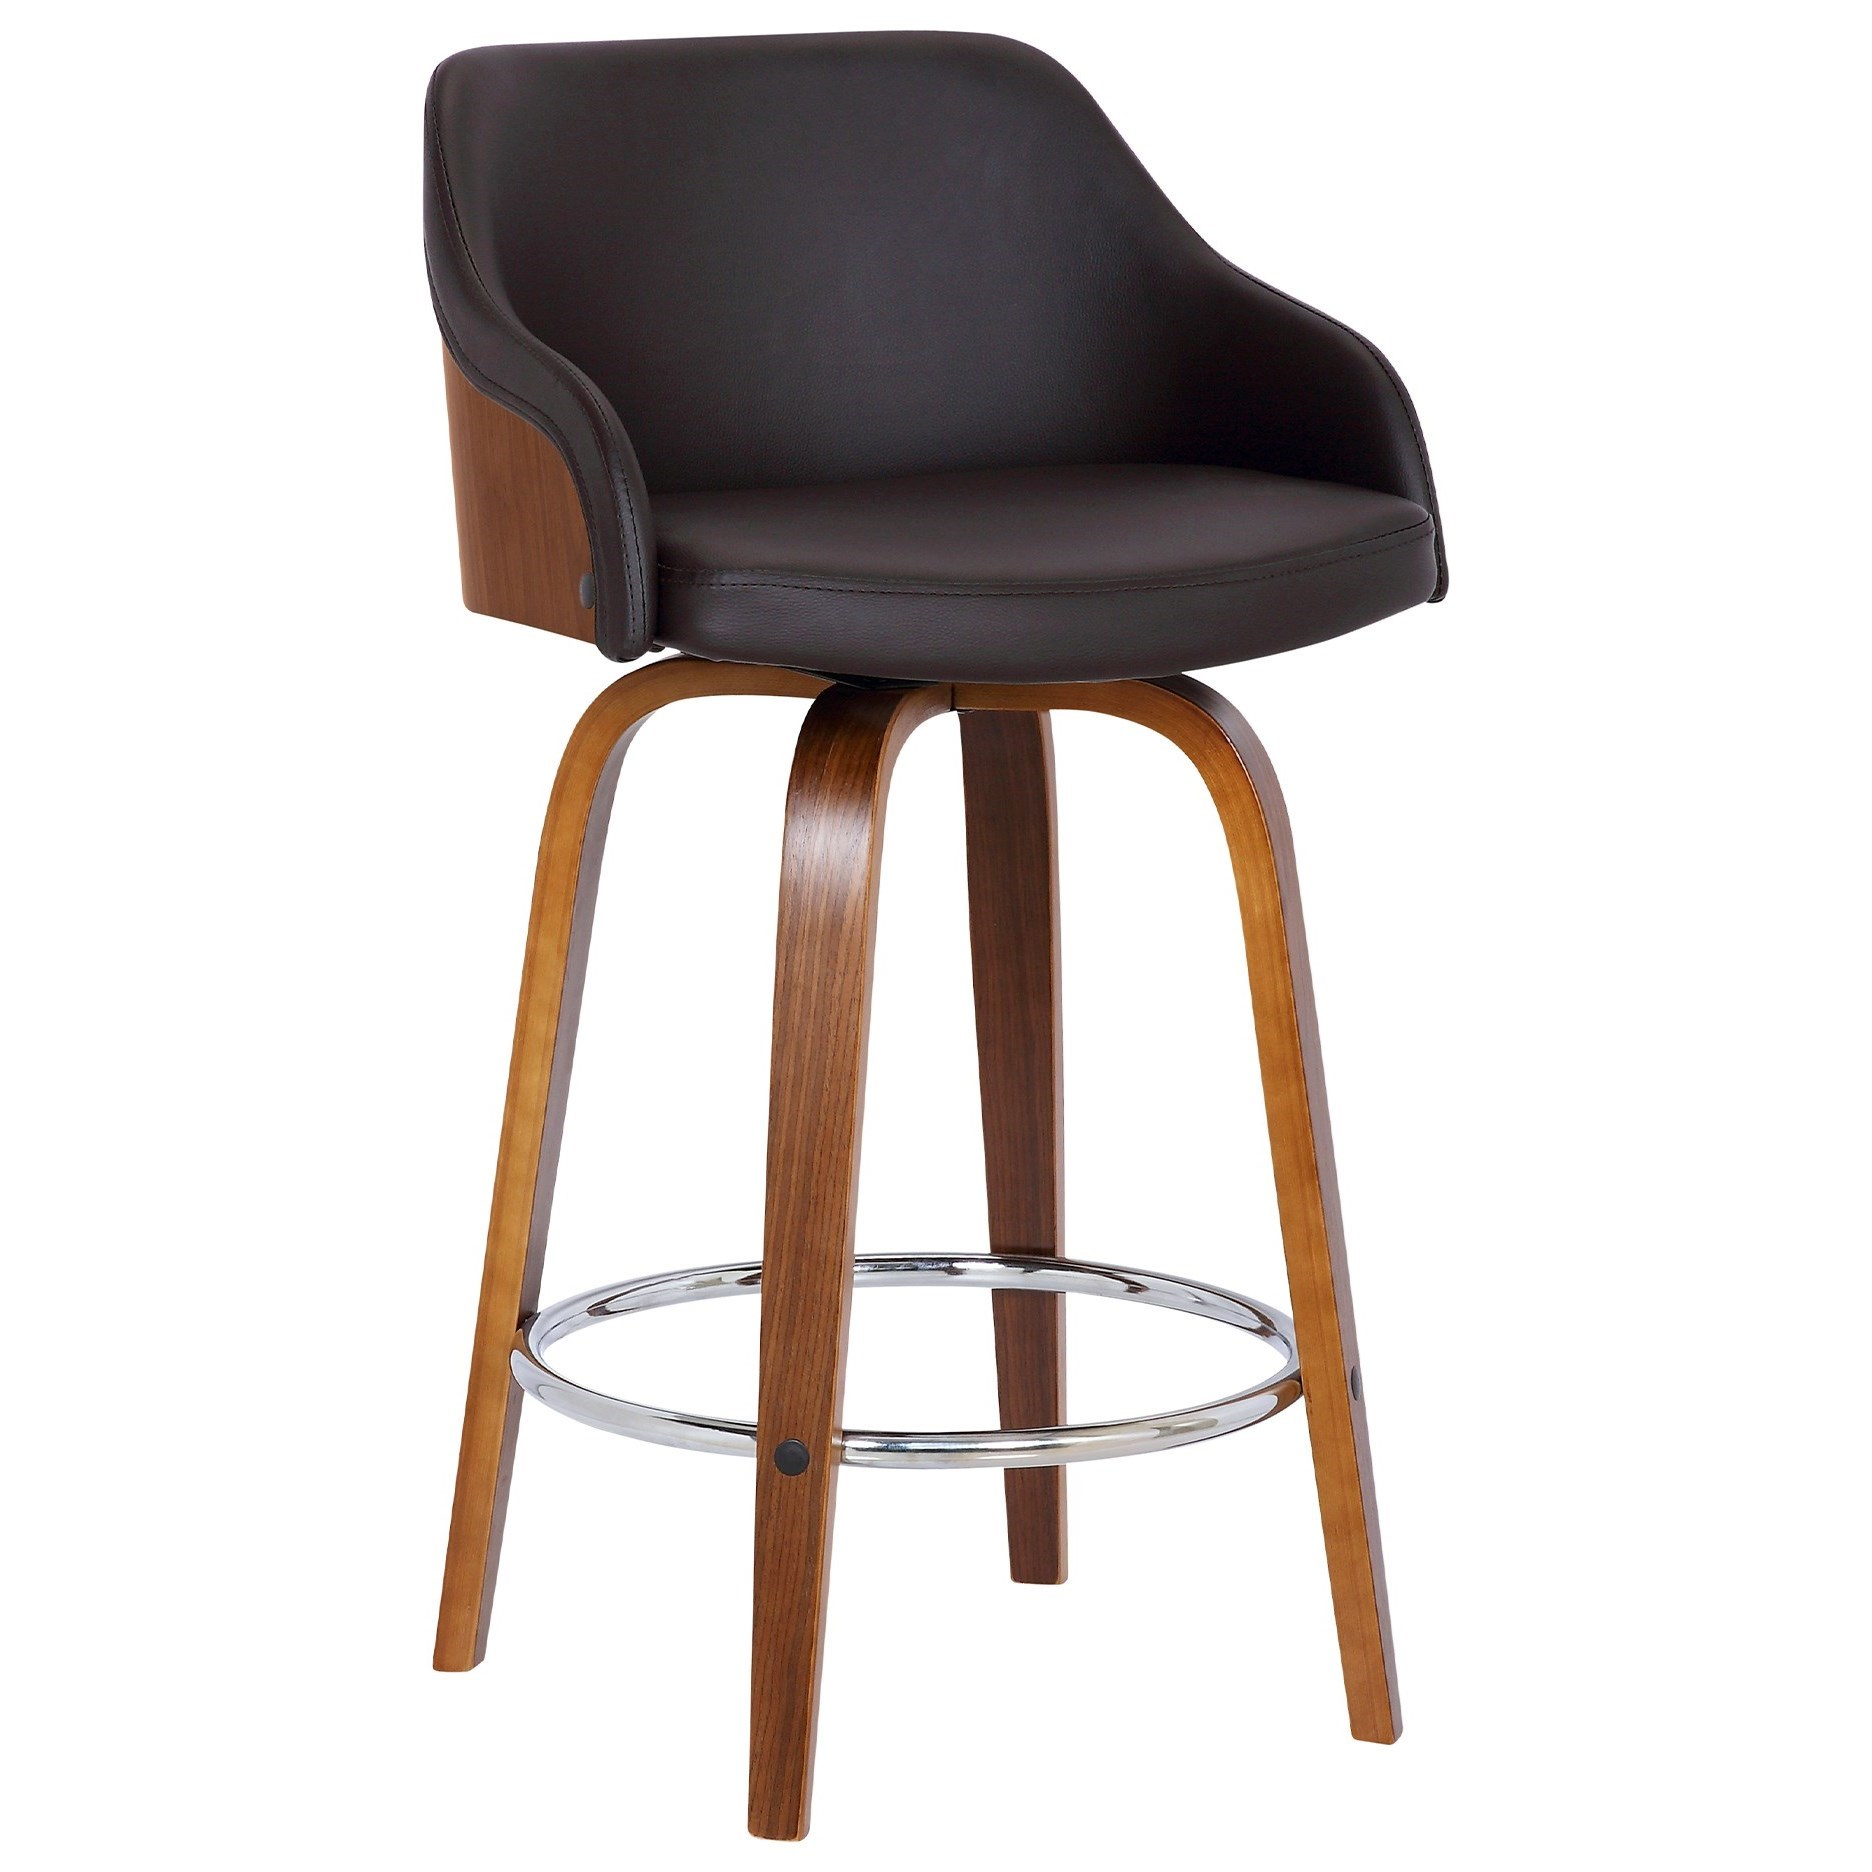 "Alec Contemporary 26"" Counter Height Swivel Stool by Armen Living at Fisher Home Furnishings"